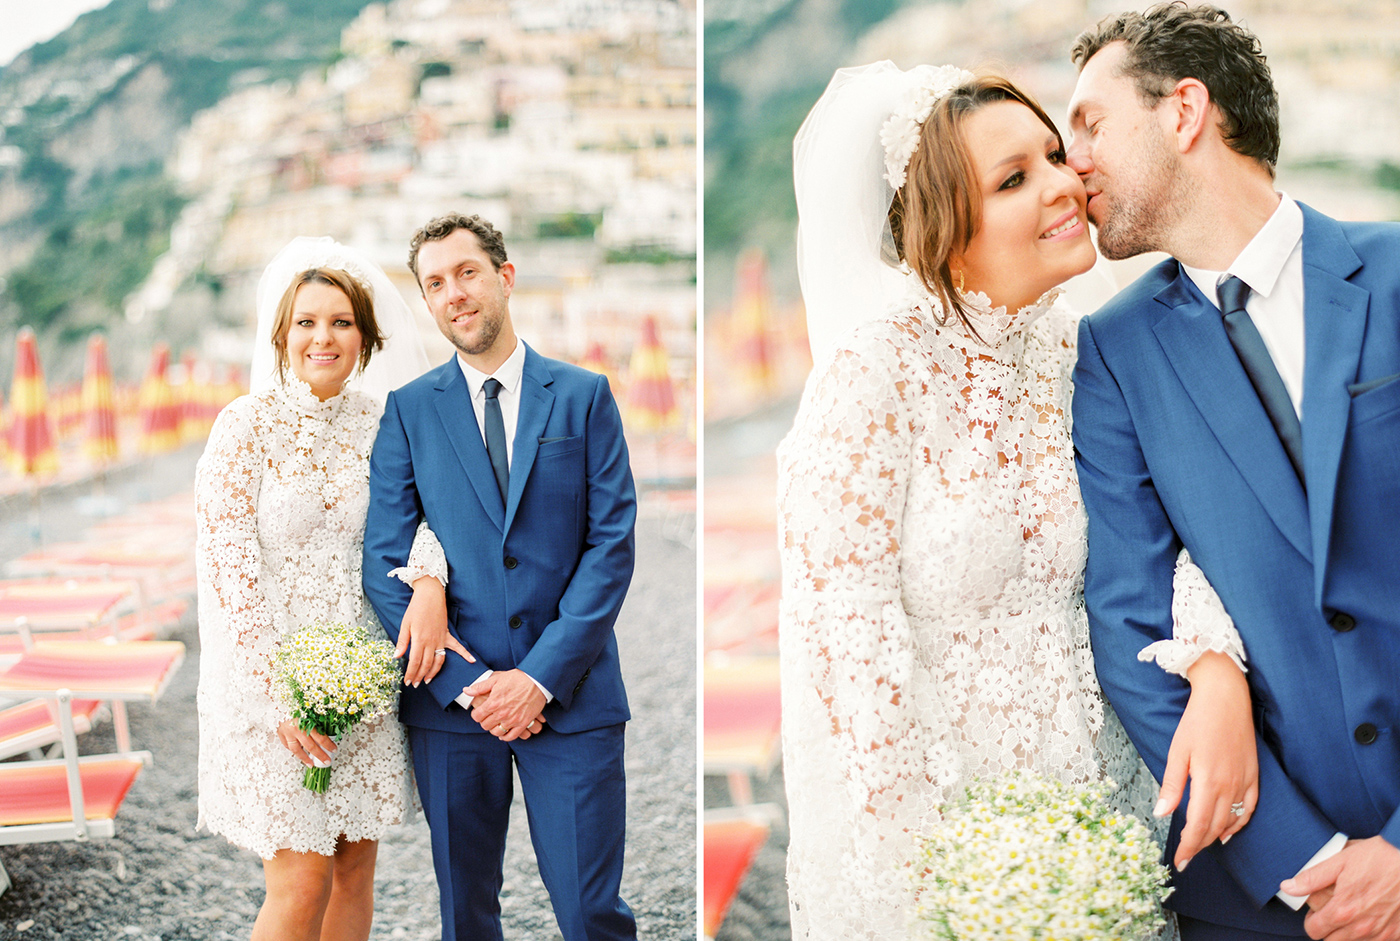 Positano Elopement Photographer Ashley Ludaescher